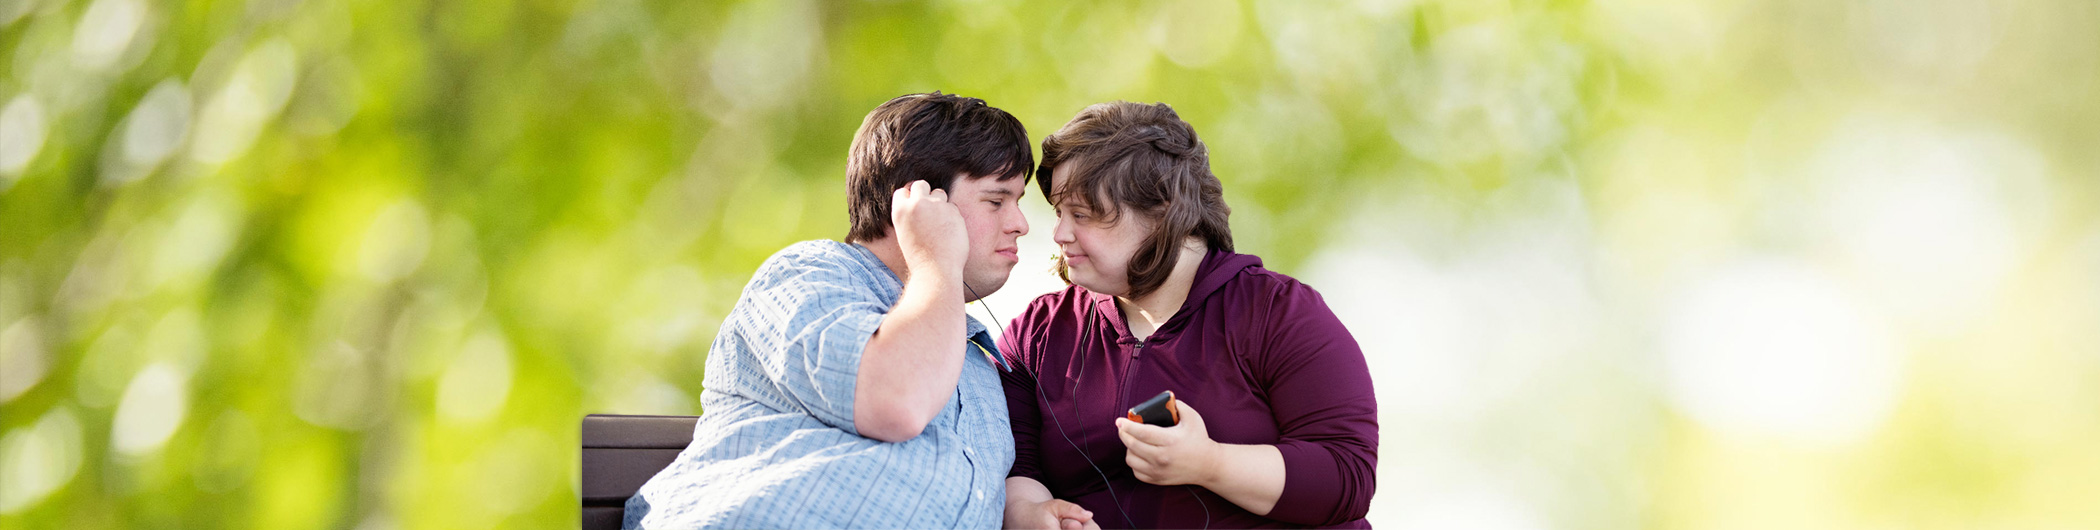 Two people with Down Syndrome sit on a park bench and listen to music together. They are looking at each other in a romantic way.